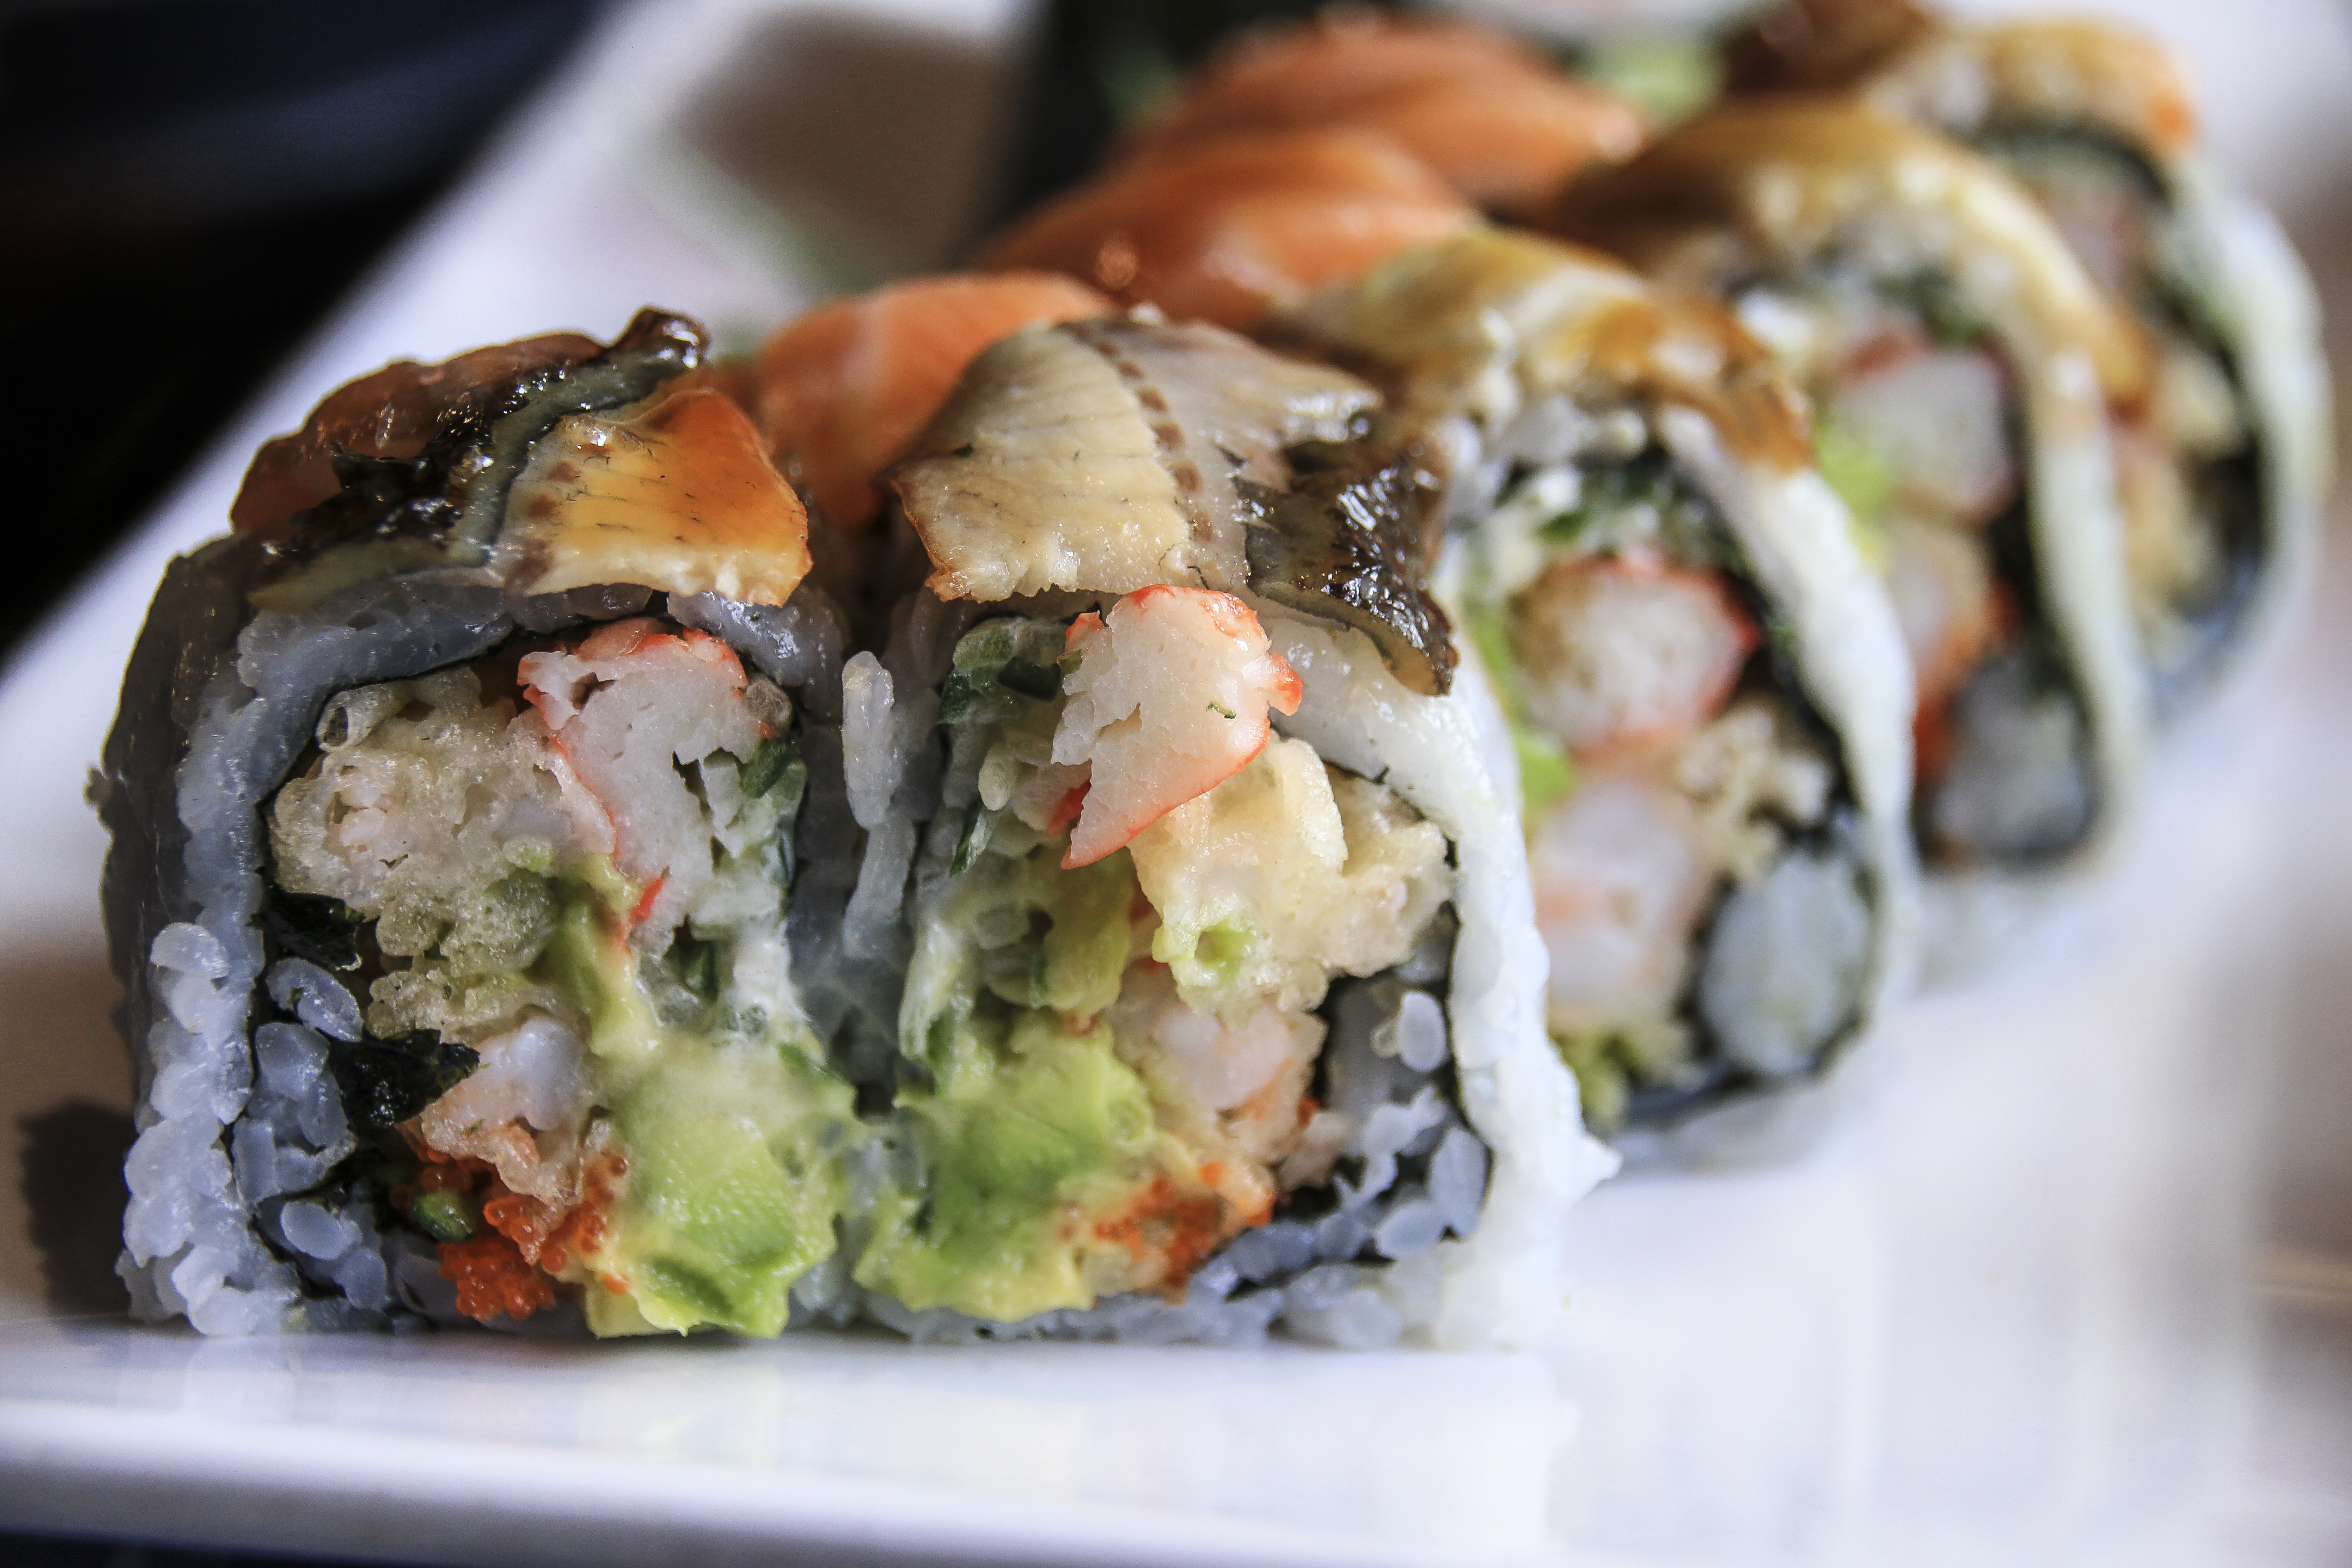 March 23 Sushi 18 - 250